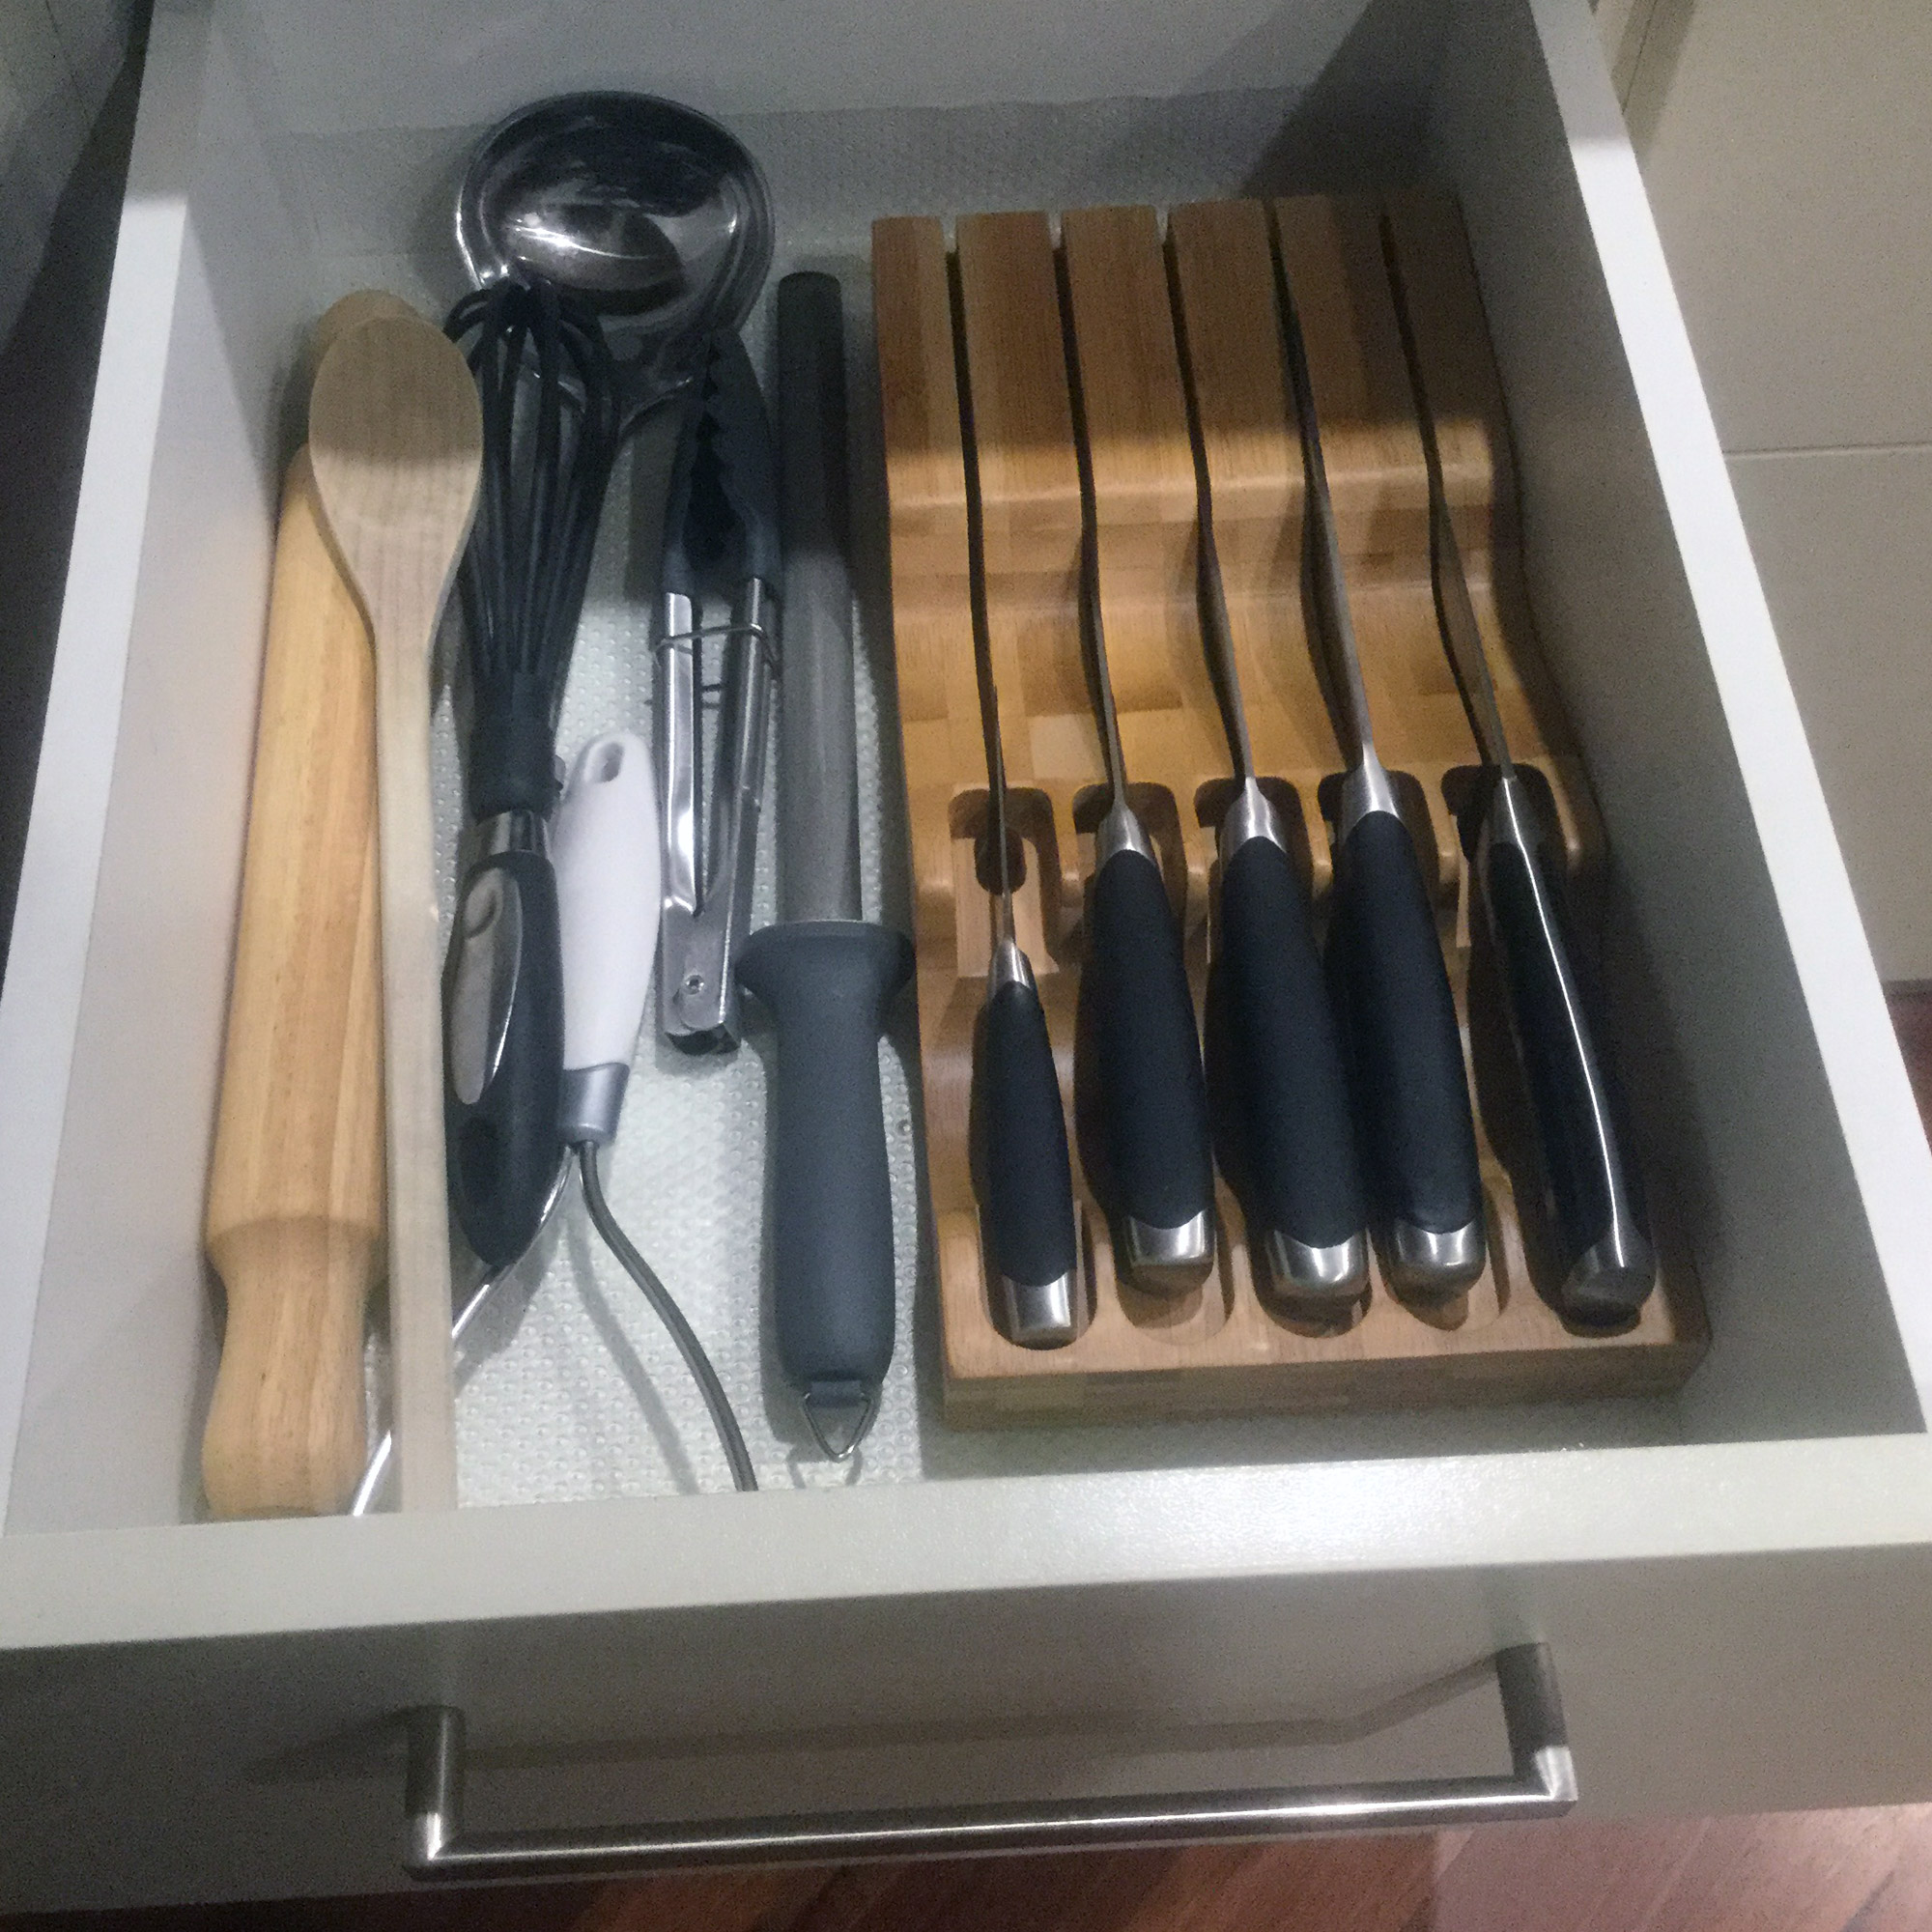 knife-drawer-rack-in-drawer-perth